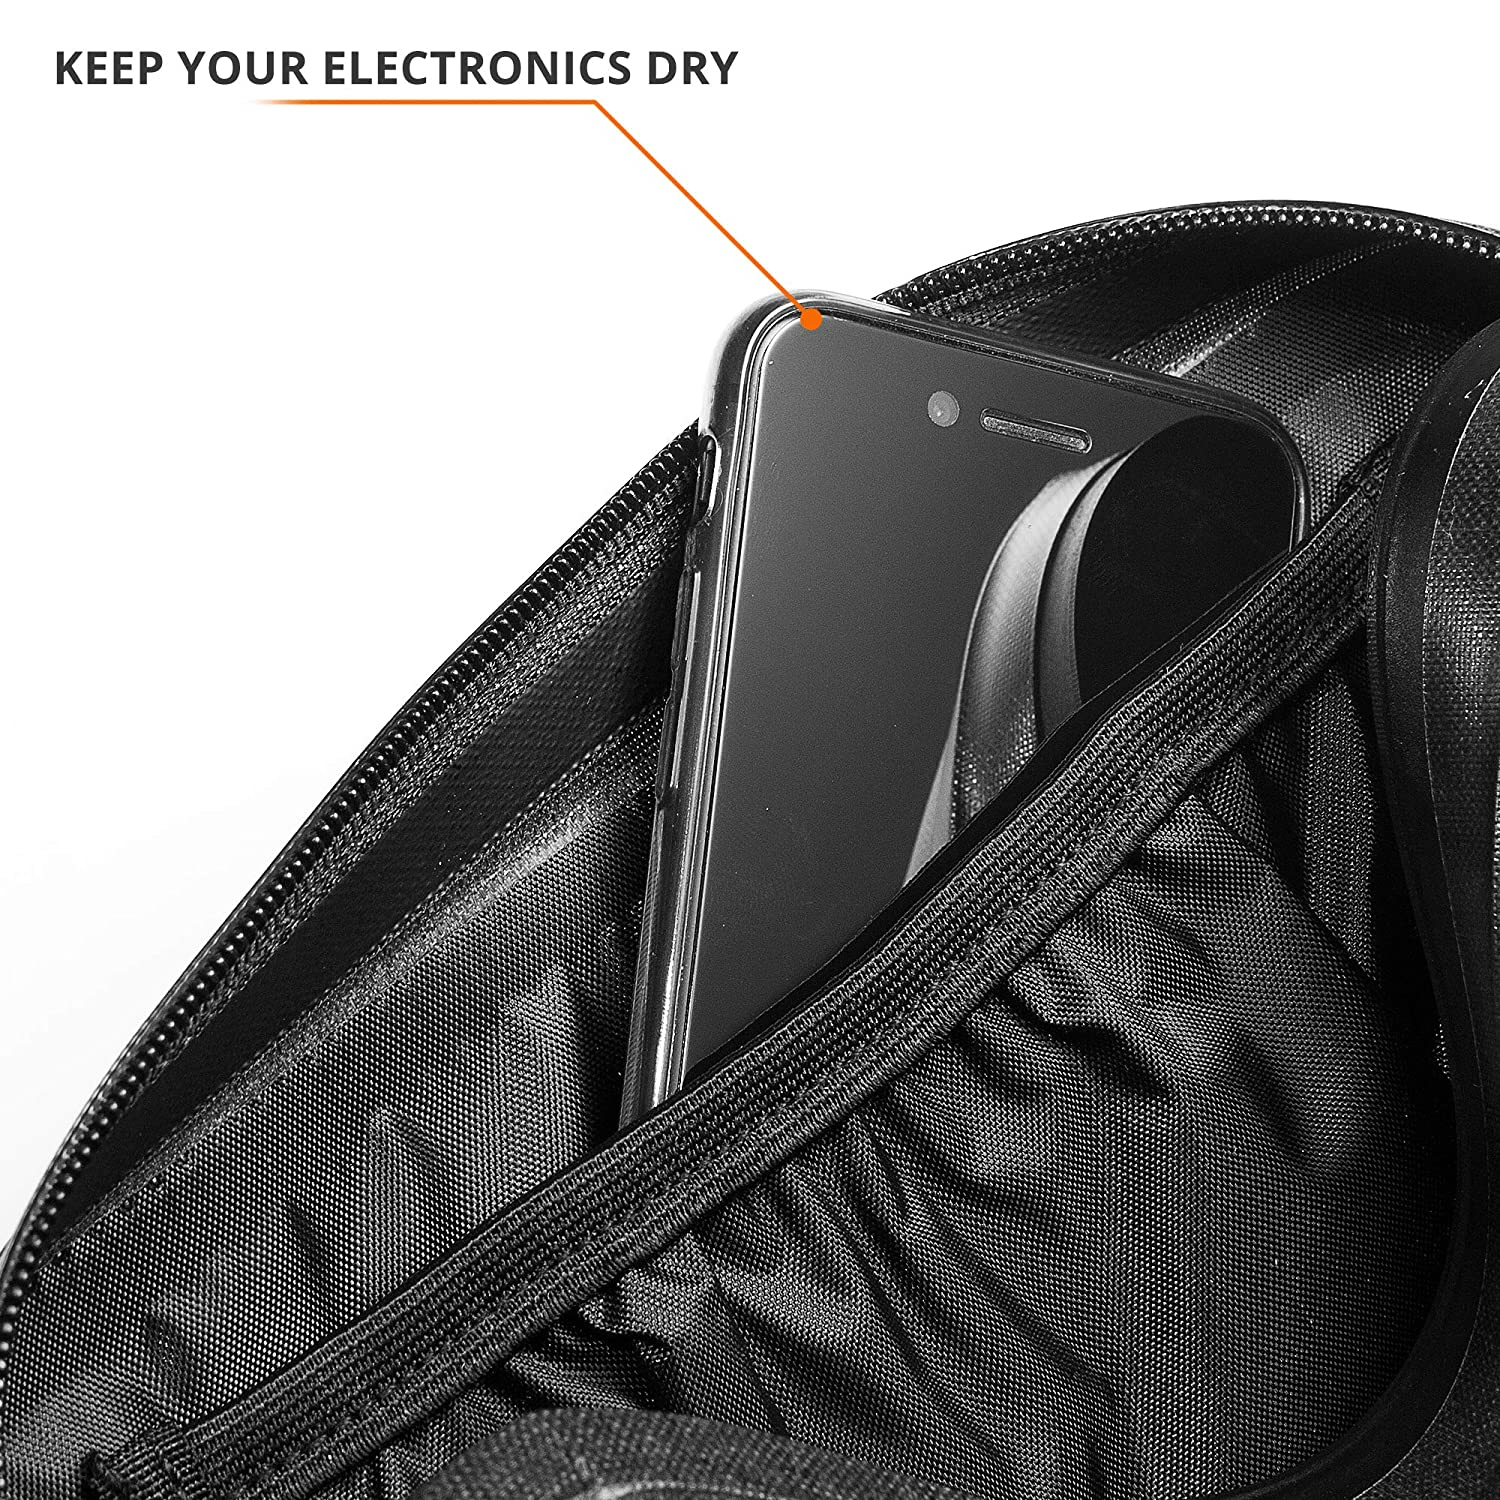 Camping Kayaking Hiking Durabag 100/% Waterproof Fanny Pack with Airtight Zipper Waist Bag for Running Protection for Smartphone and Handheld Camera from Dust Rain and Water Cycling